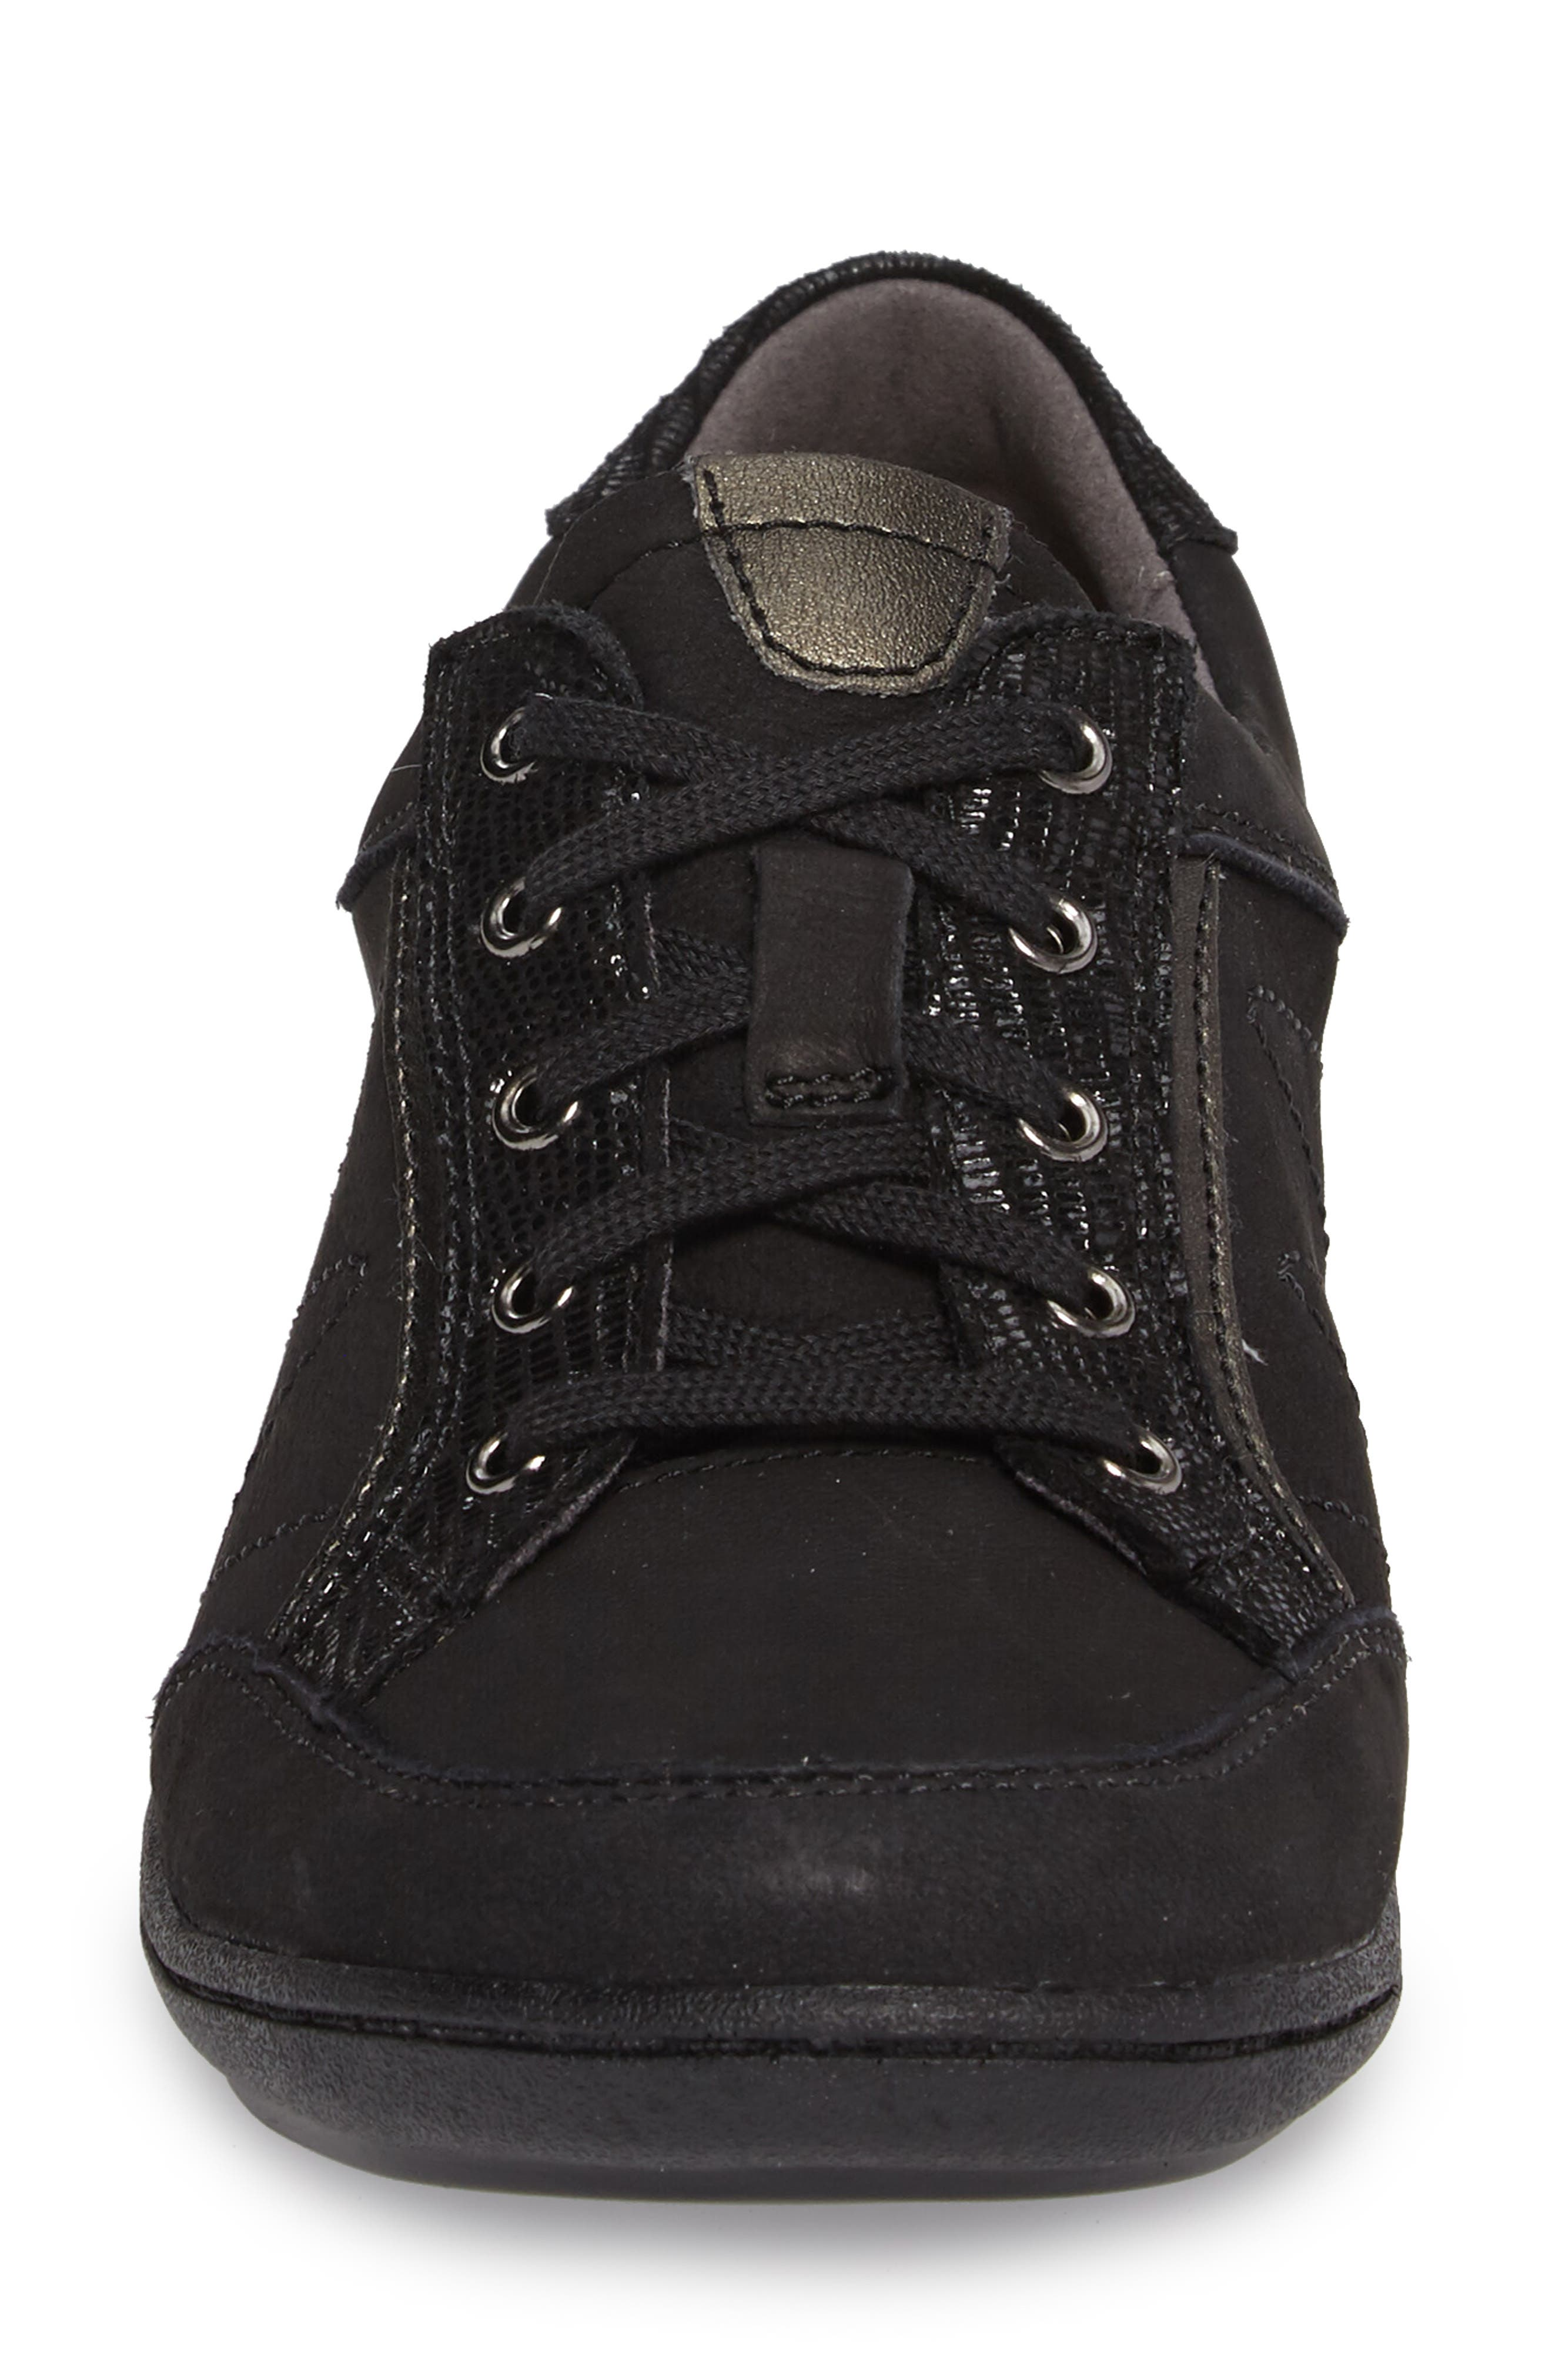 Bromly Sneaker,                             Alternate thumbnail 4, color,                             Black Fabric